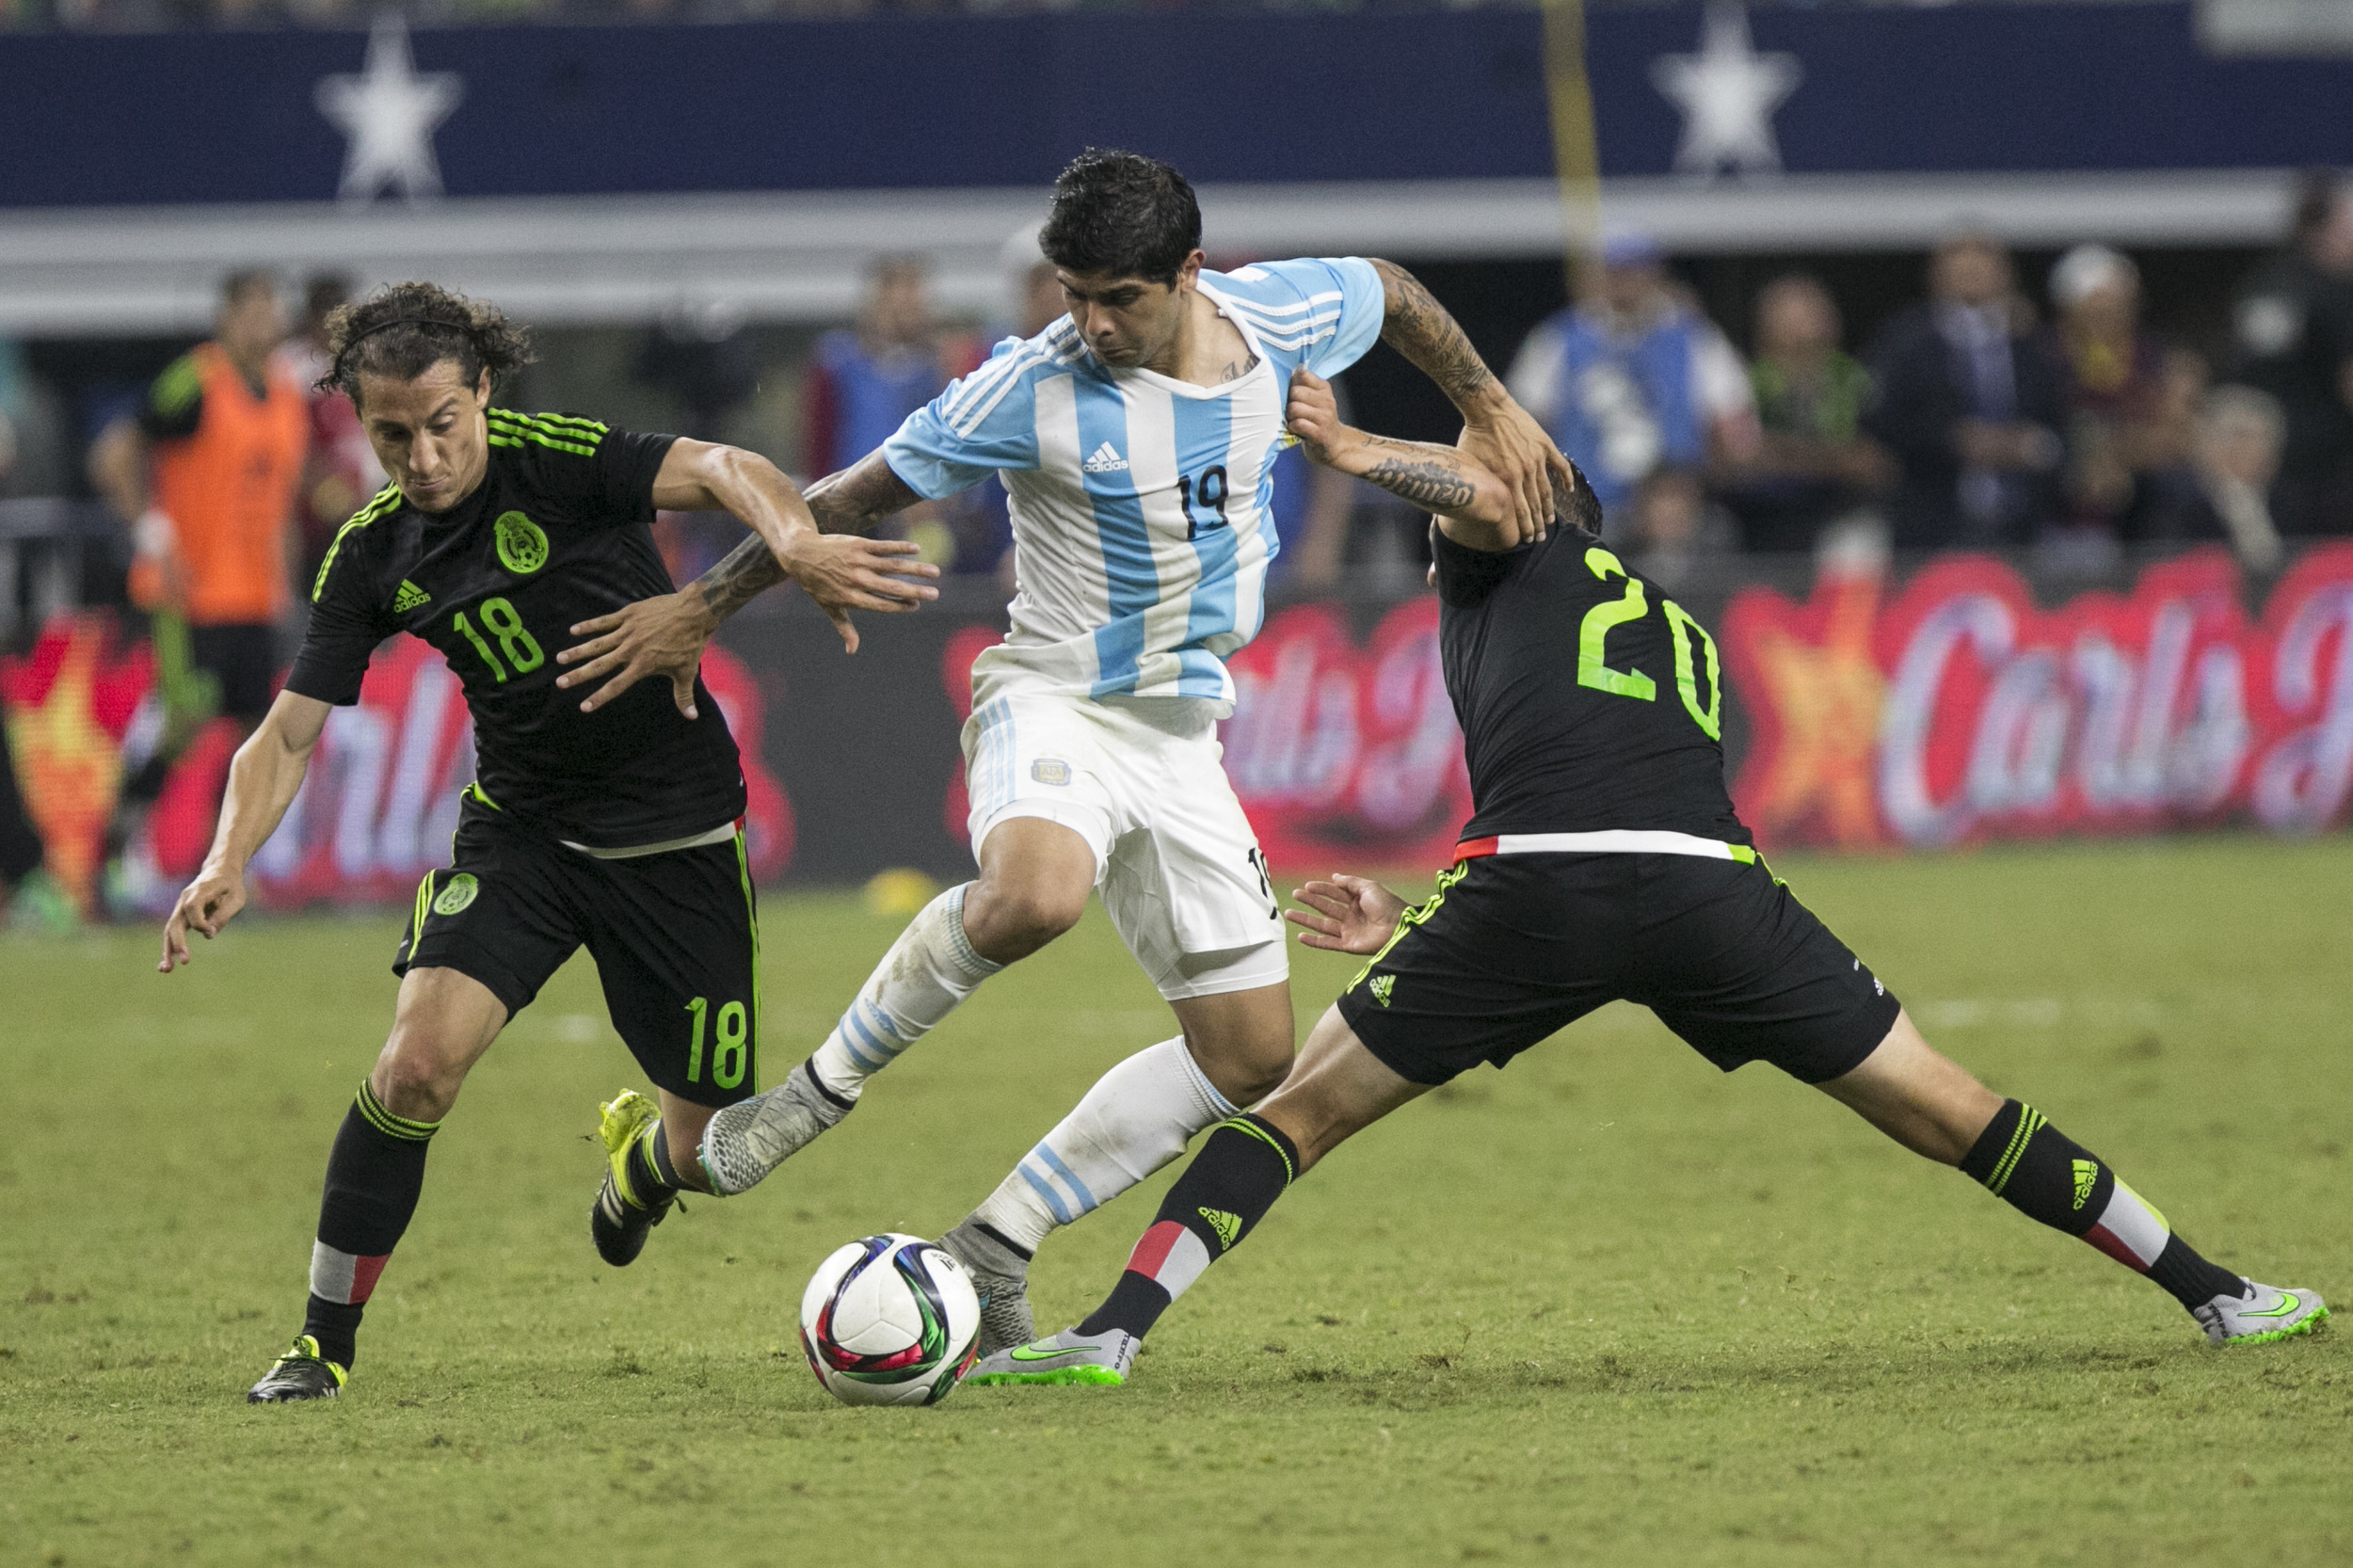 Mexico vs. Argentina National Soccer on Sep. 8, 2015, in Arlington, TX.